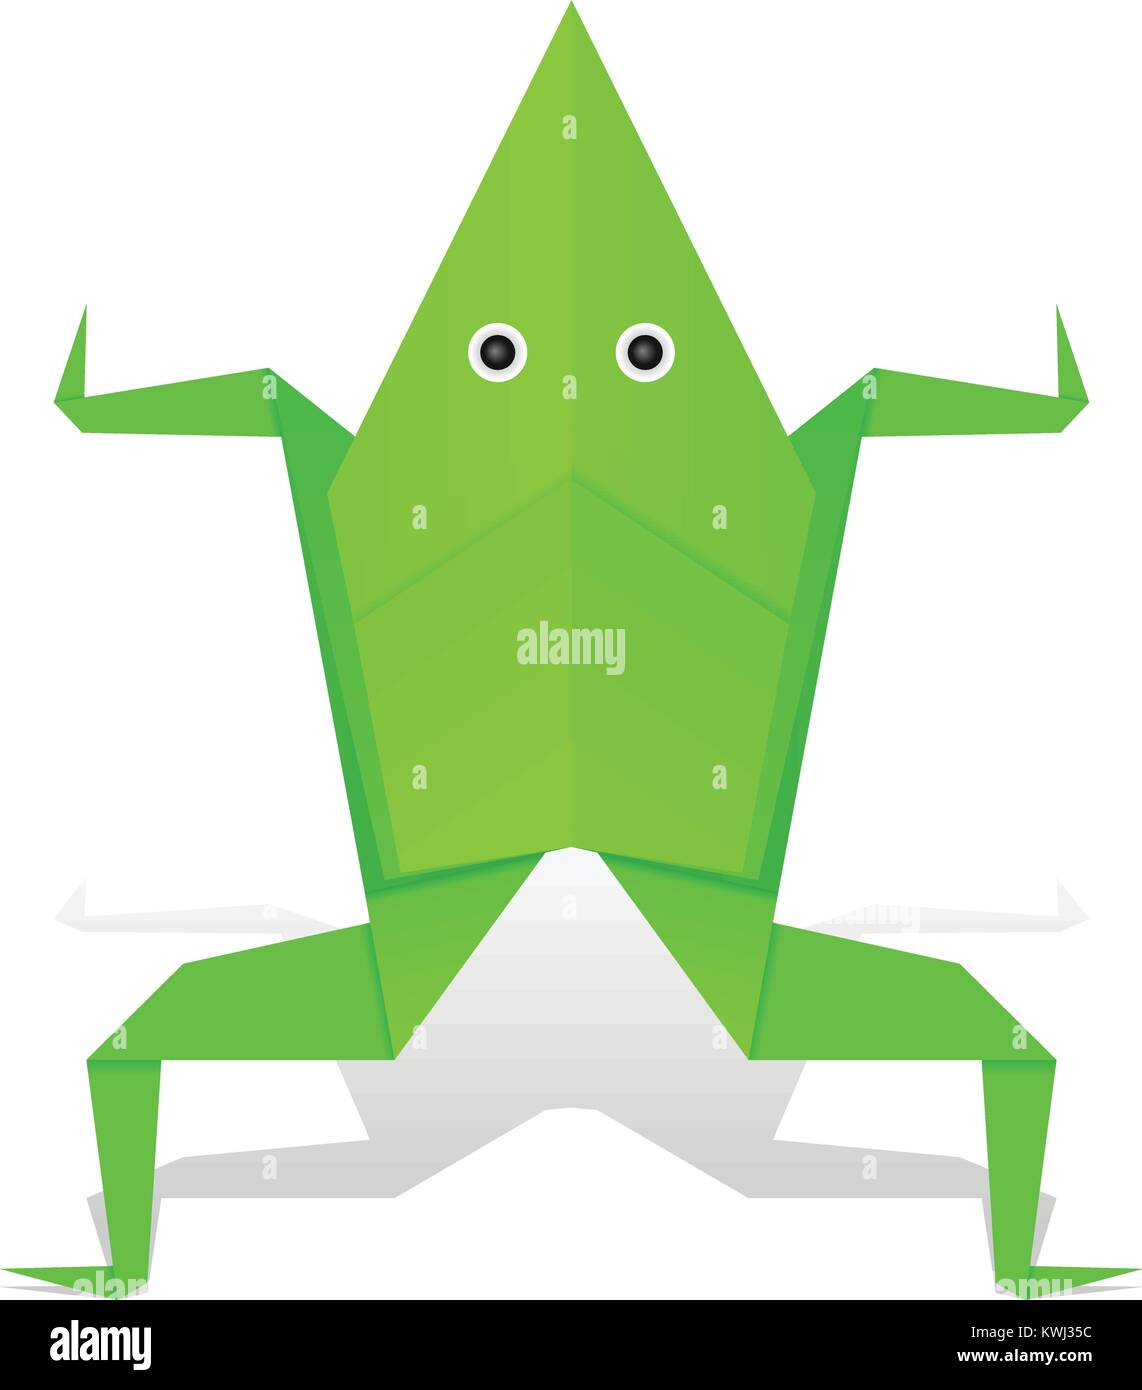 Origami Frog Face Instructions   Free Printable Papercraft Templates   1390x1142